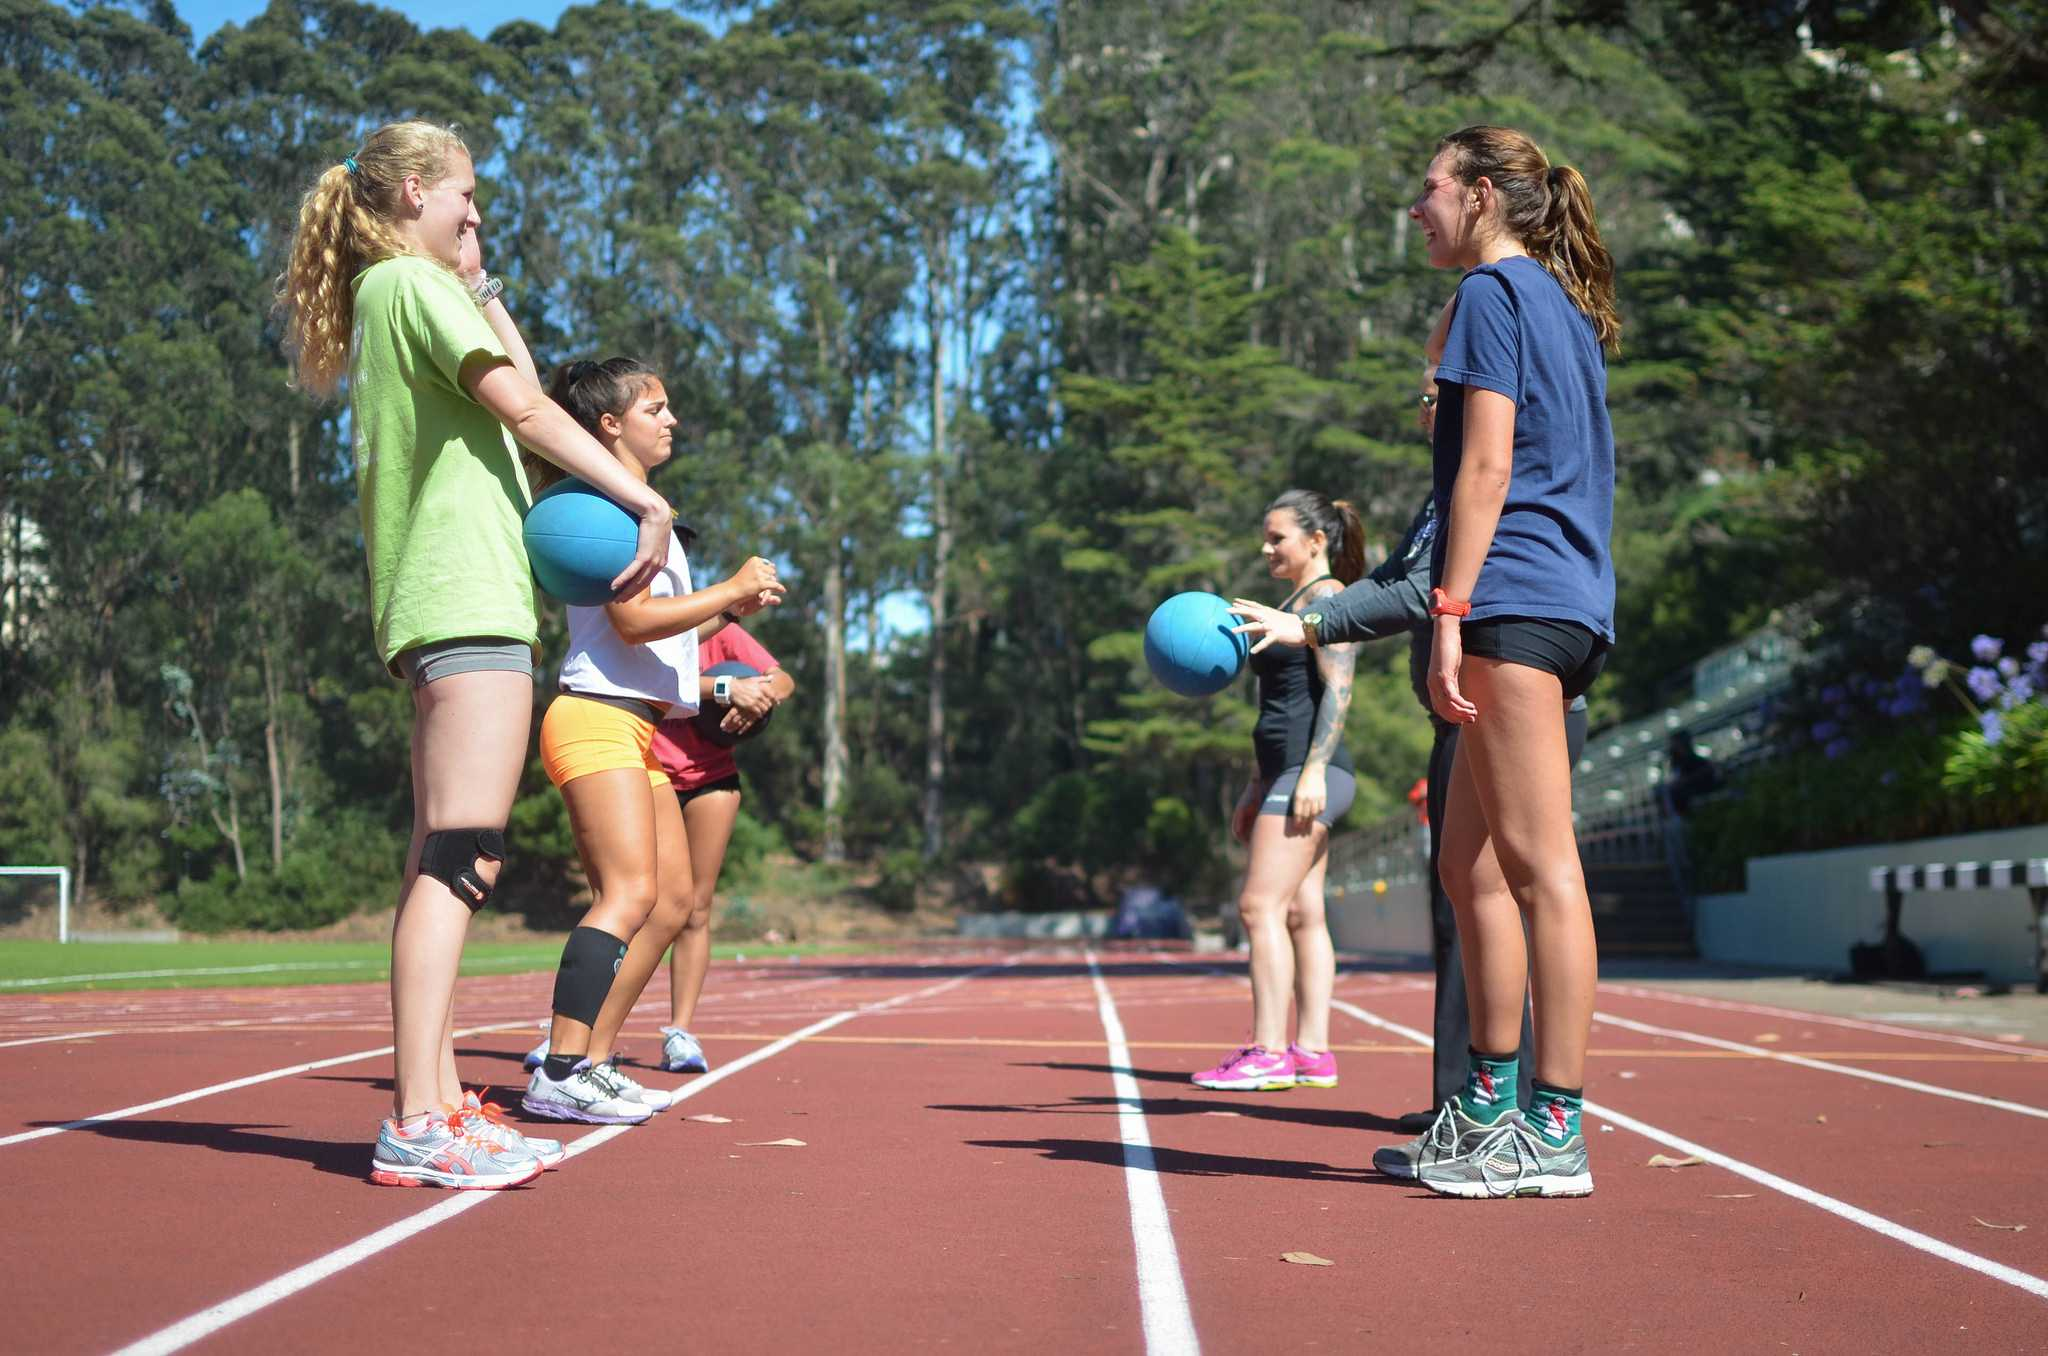 Members of the SF State women's cross country team throw  medicine balls to each other during practice at Cox Stadium Monday, August 24. (Melissa Minton / Xpress)